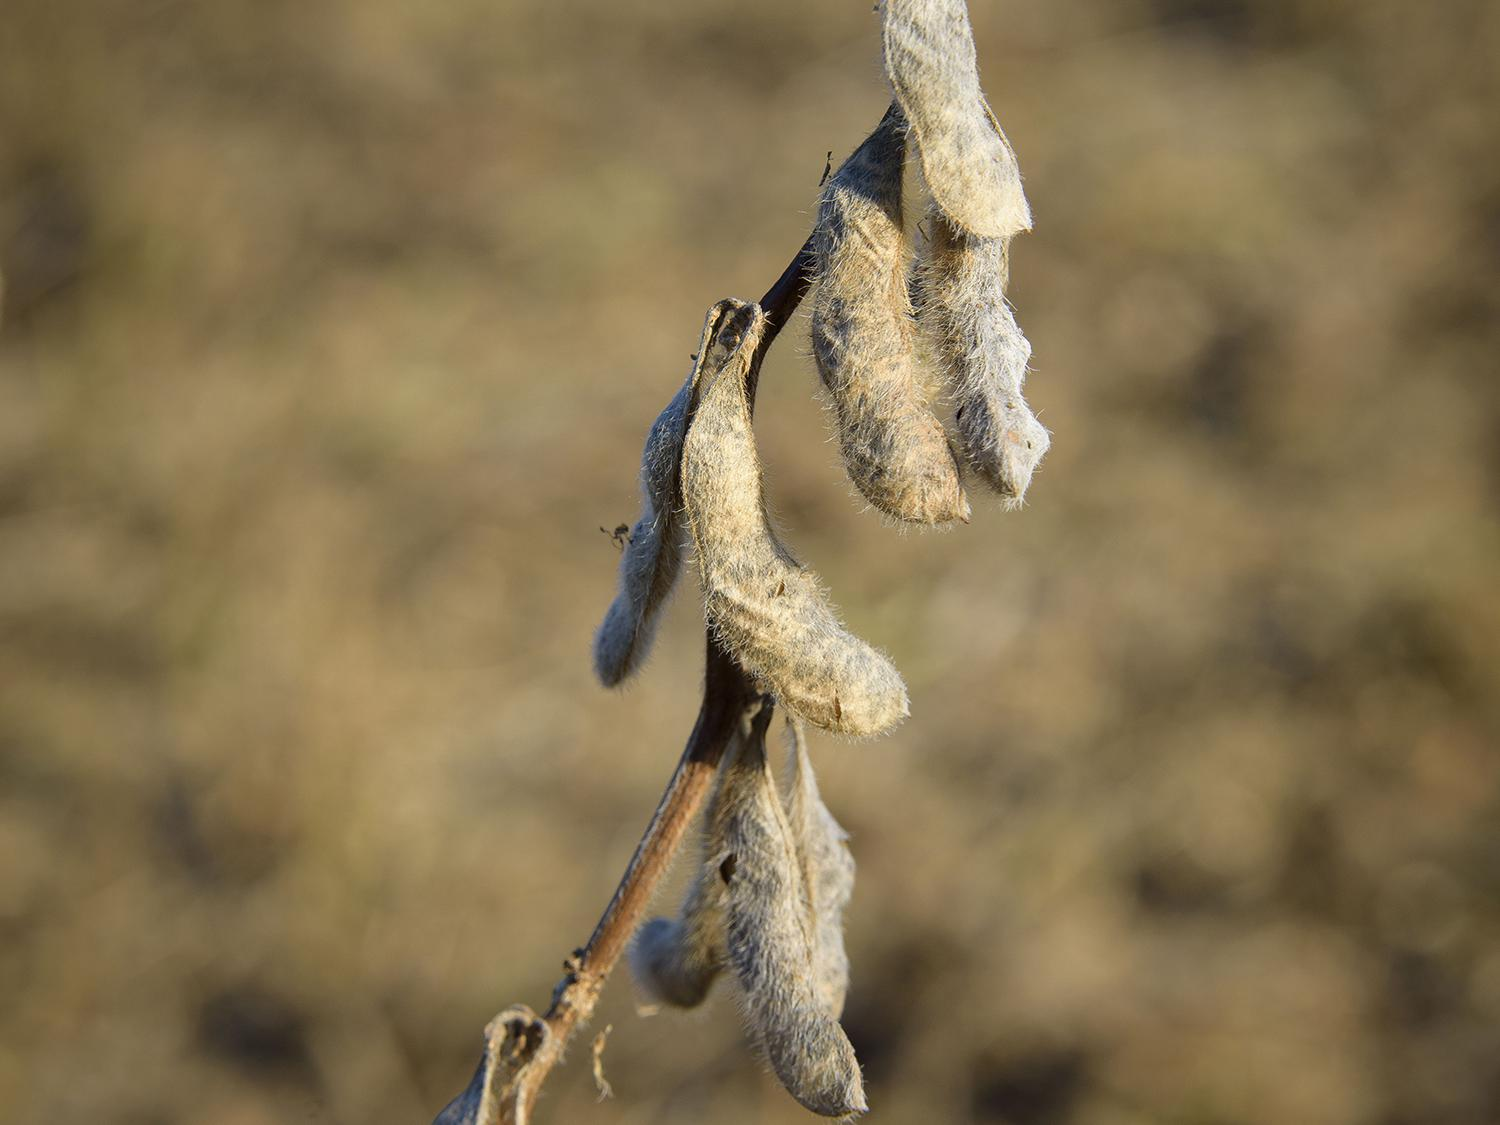 Photo shows mature, dried soybean pods hanging against a brown, natural background.